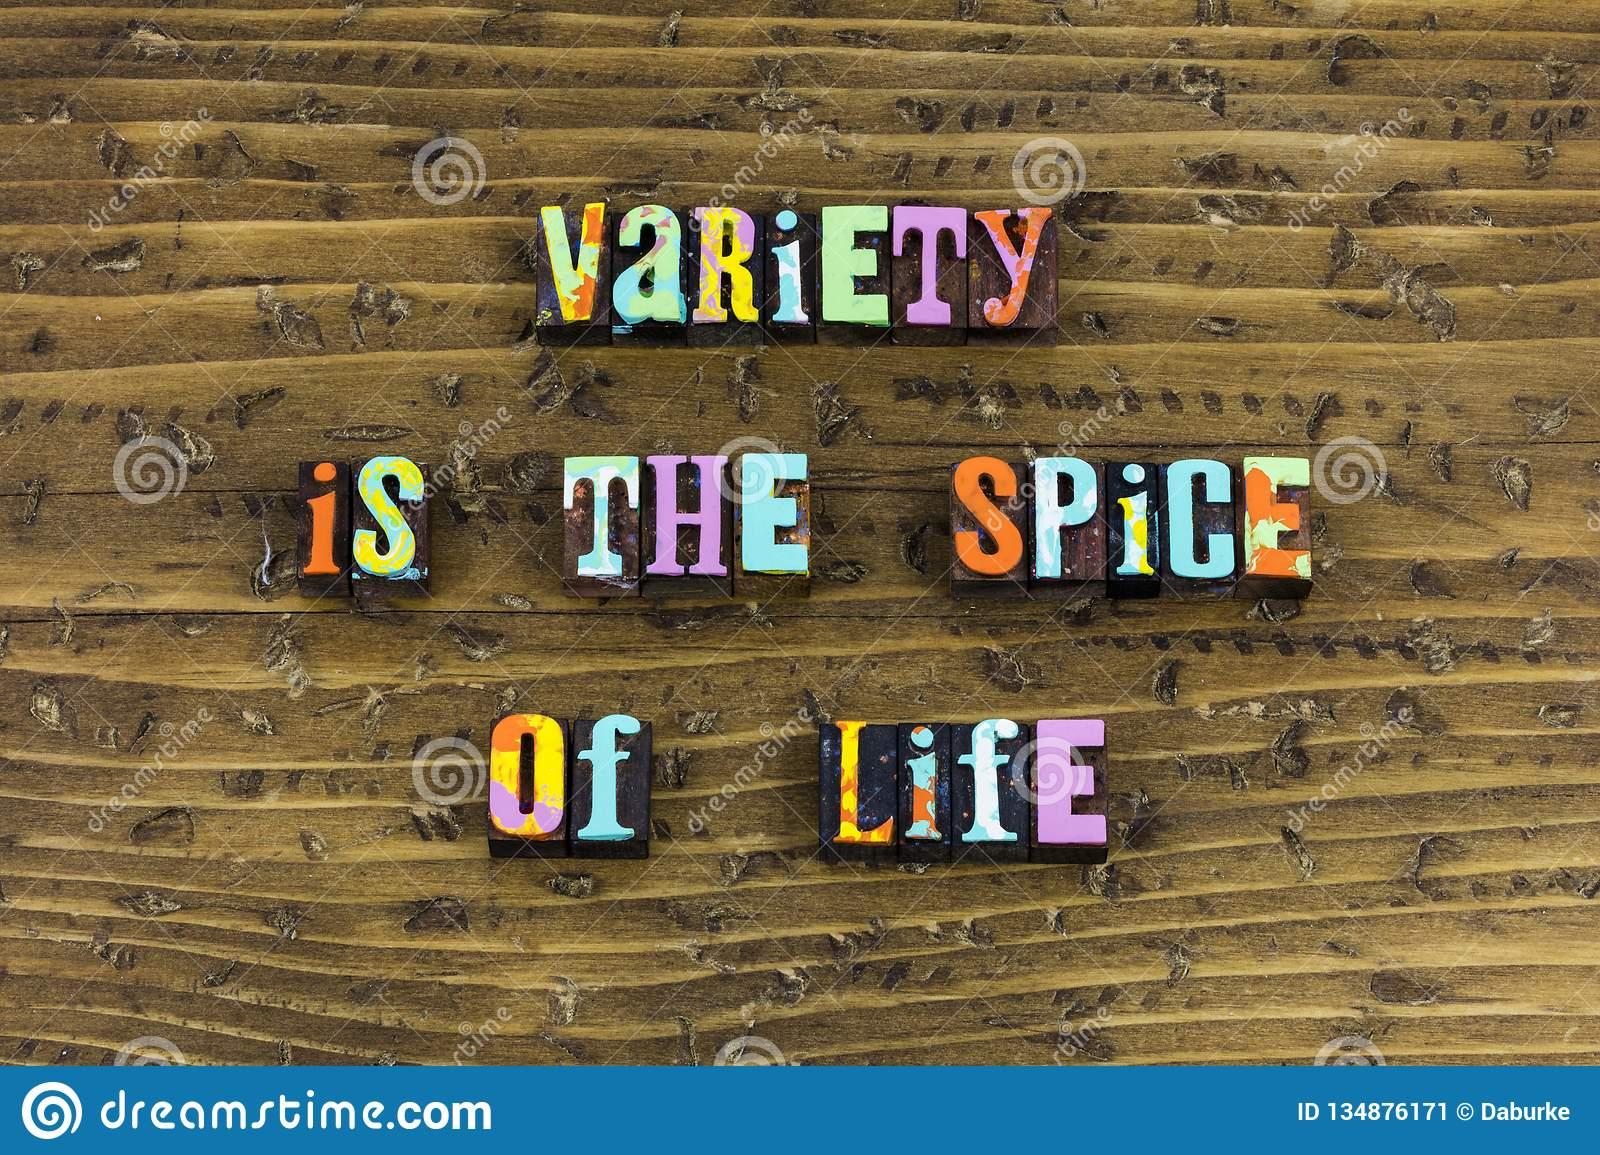 Variety spice life change experience